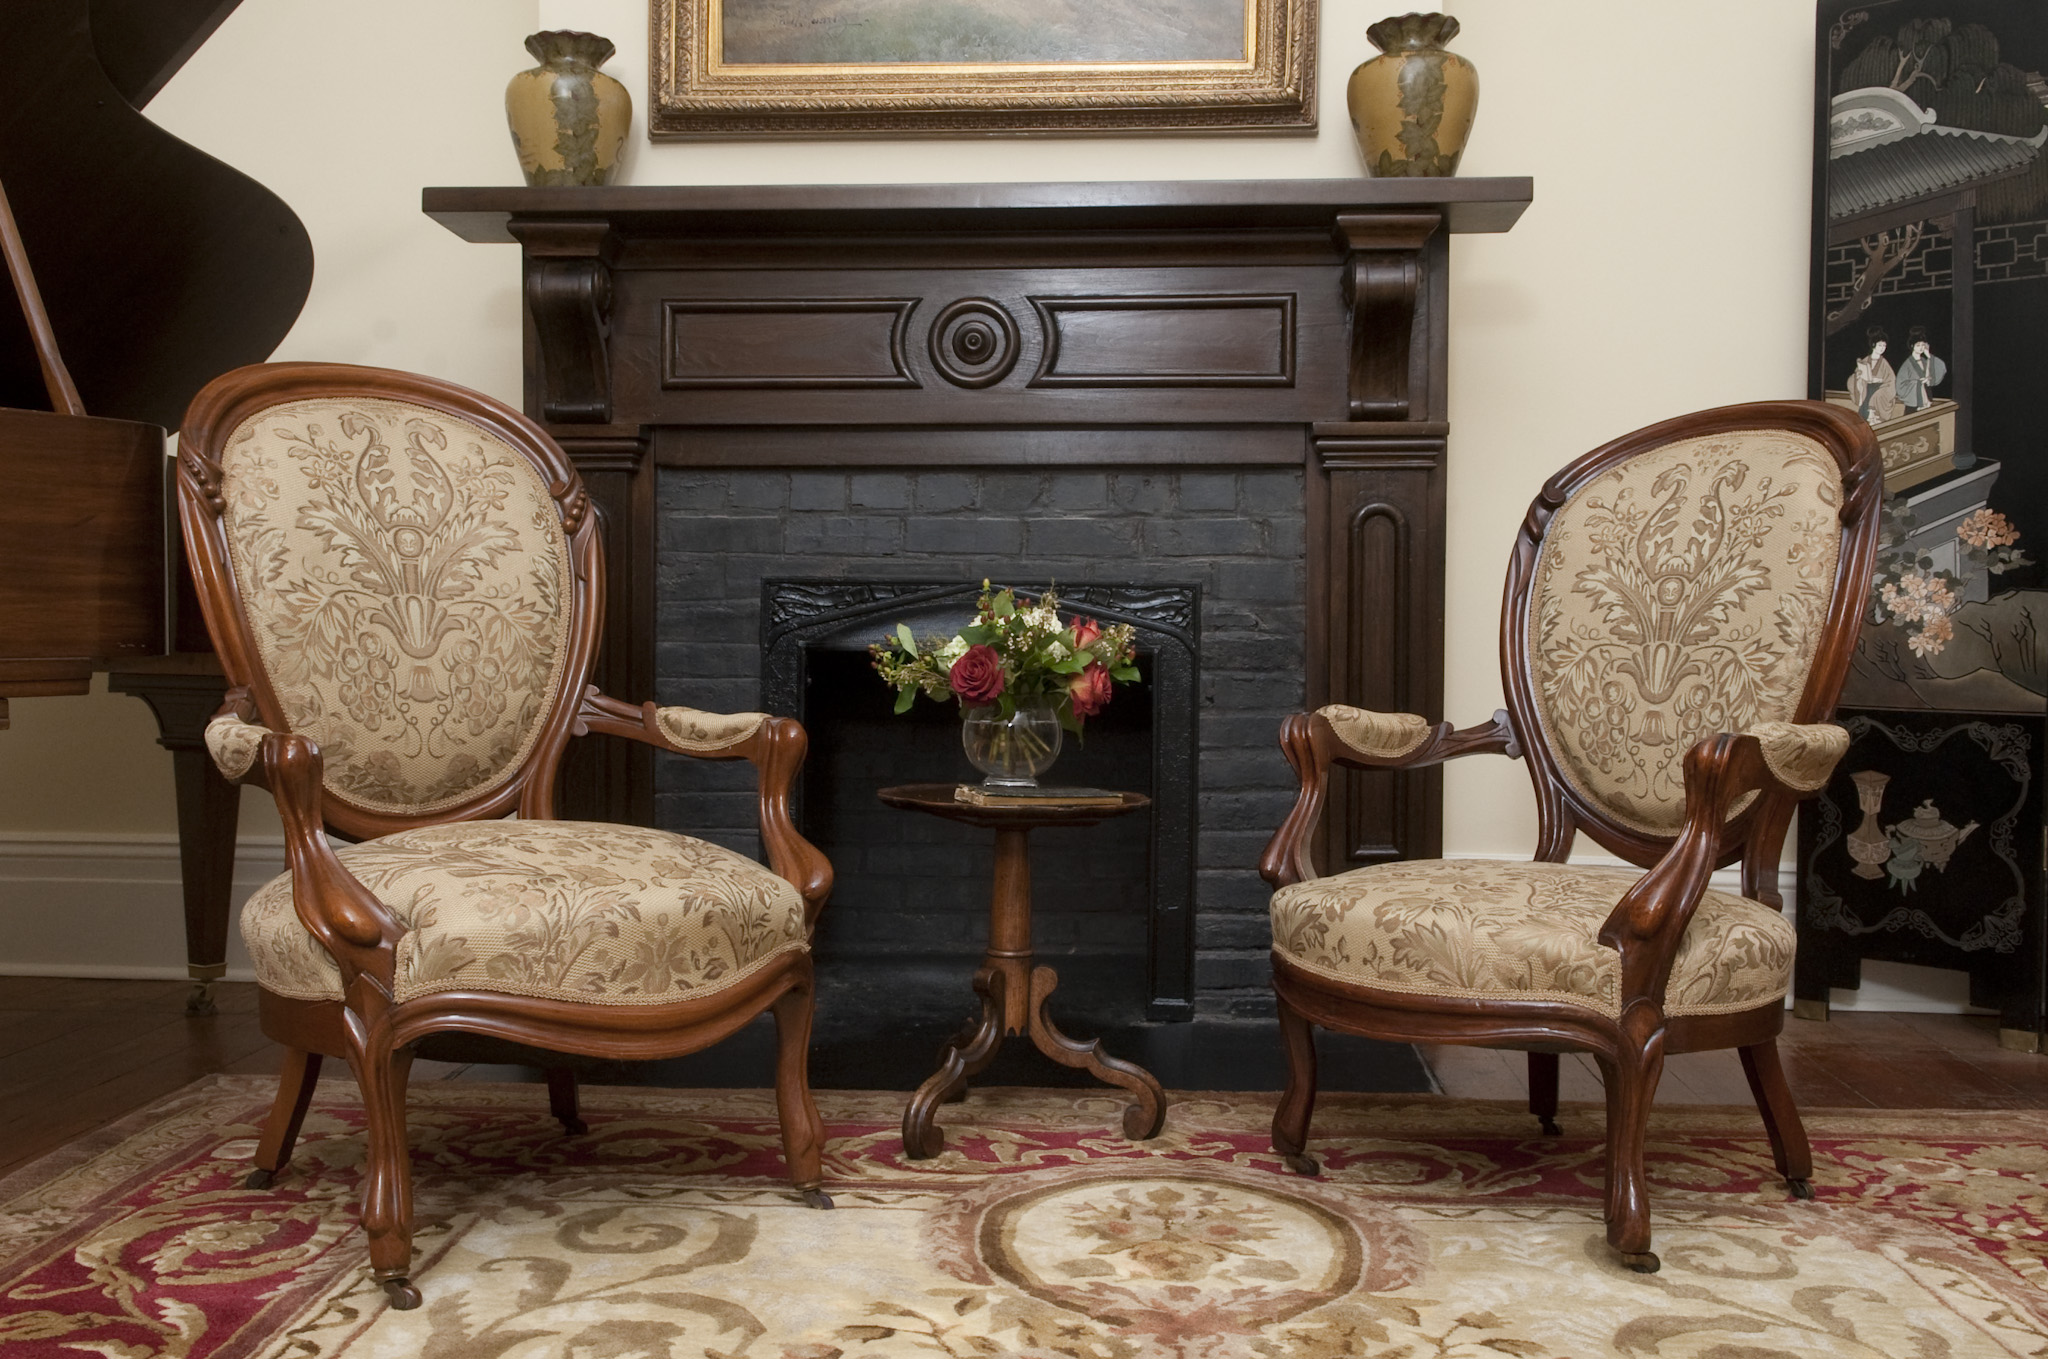 After front parlor 2